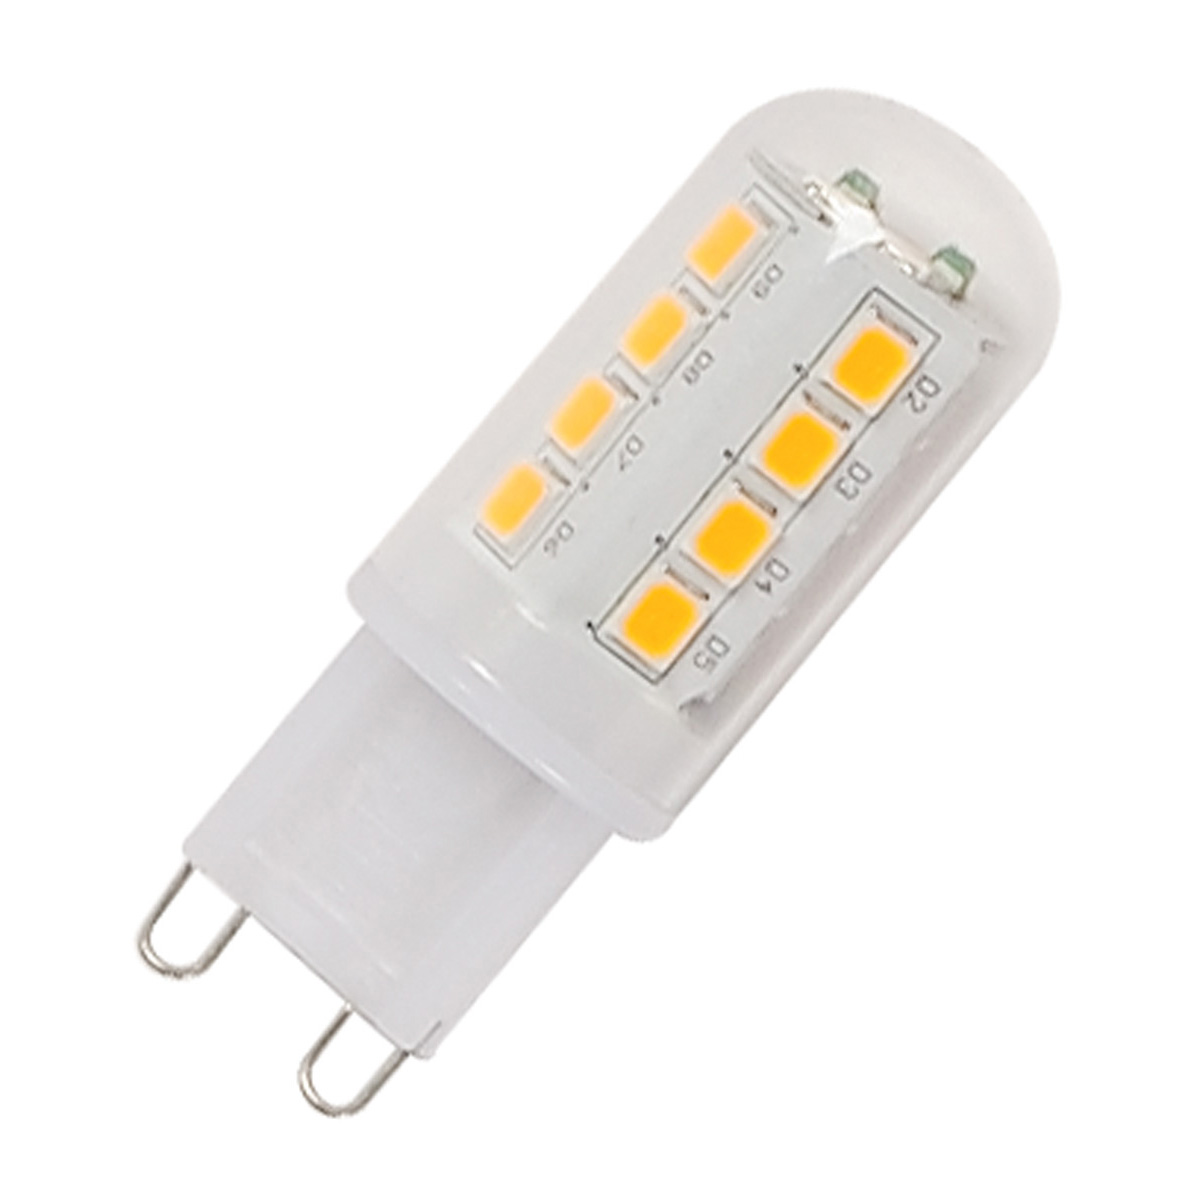 G9 LED lamp, 2.3W, 2700K, Multidot